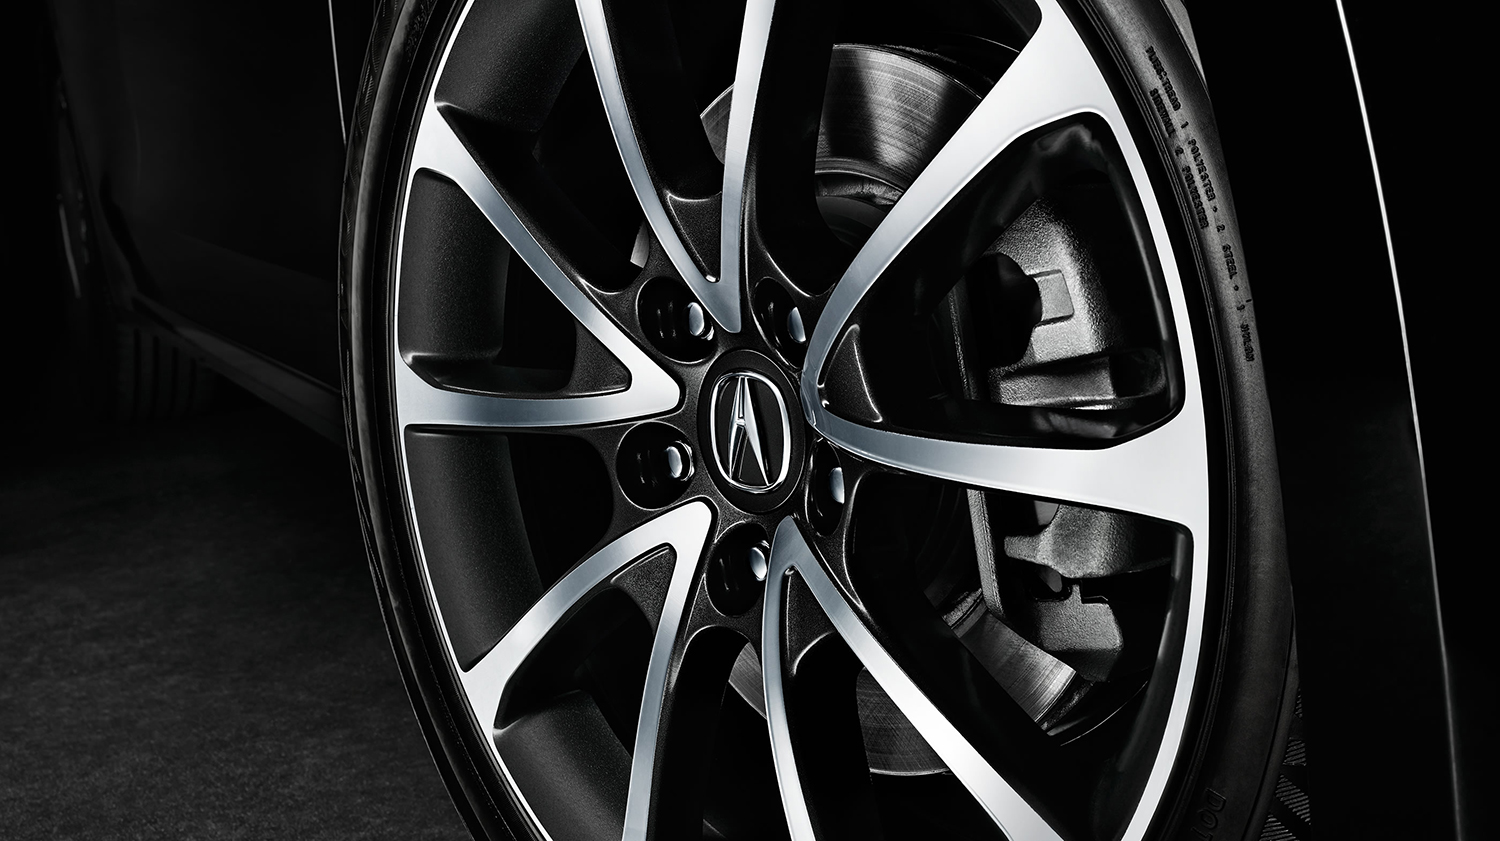 2017 Acura TLX Wheels